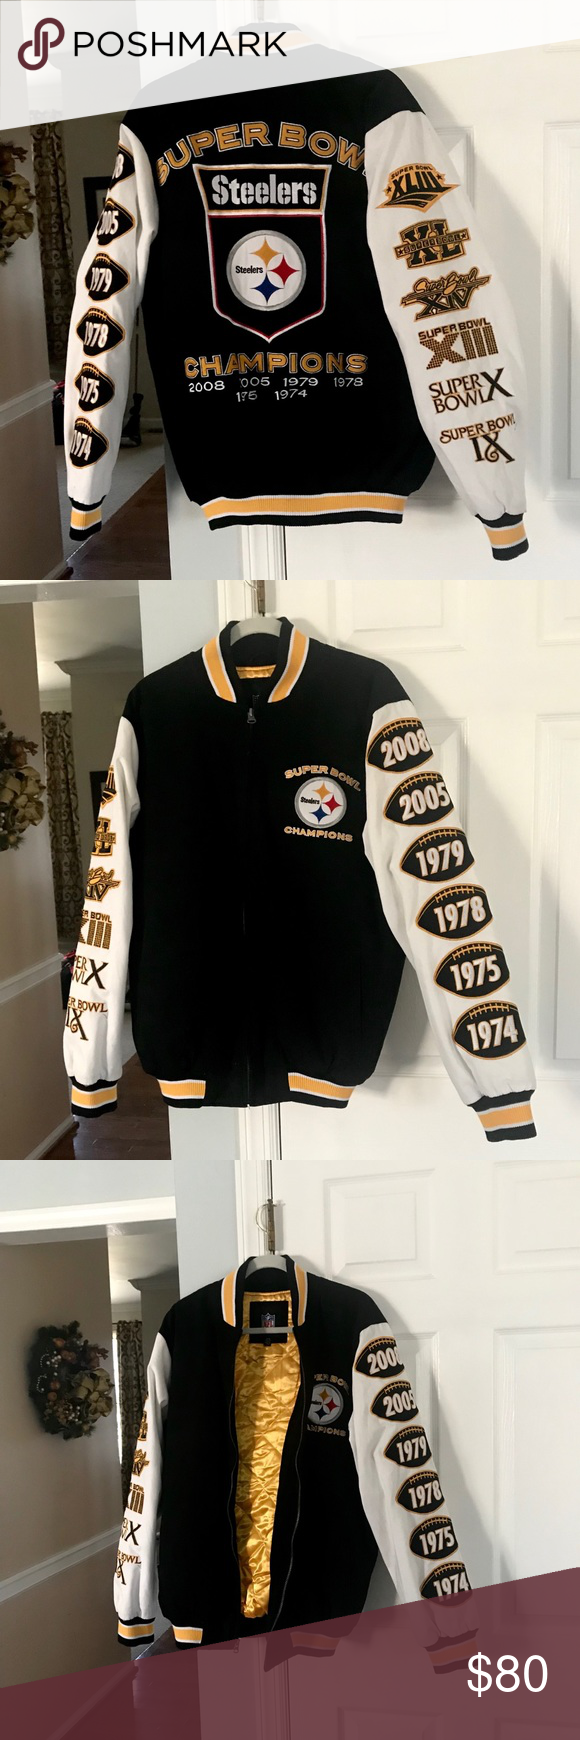 low priced 84975 f874e Pittsburg Steelers SuperBowl Champions Jacket Pittsburgh ...